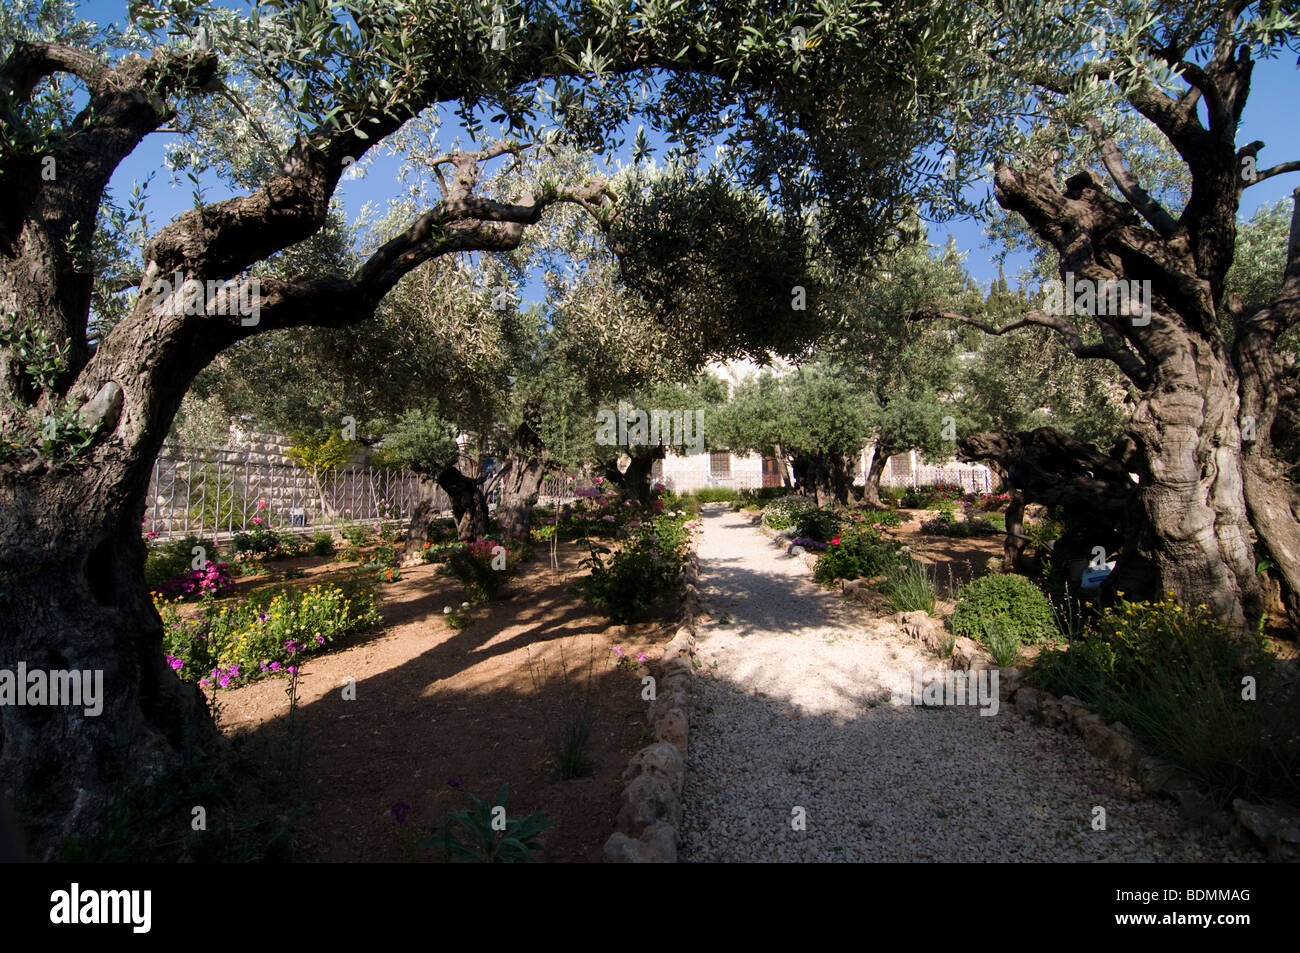 Ancient olive trees in the garden of gethsemane for Age olive trees garden gethsemane